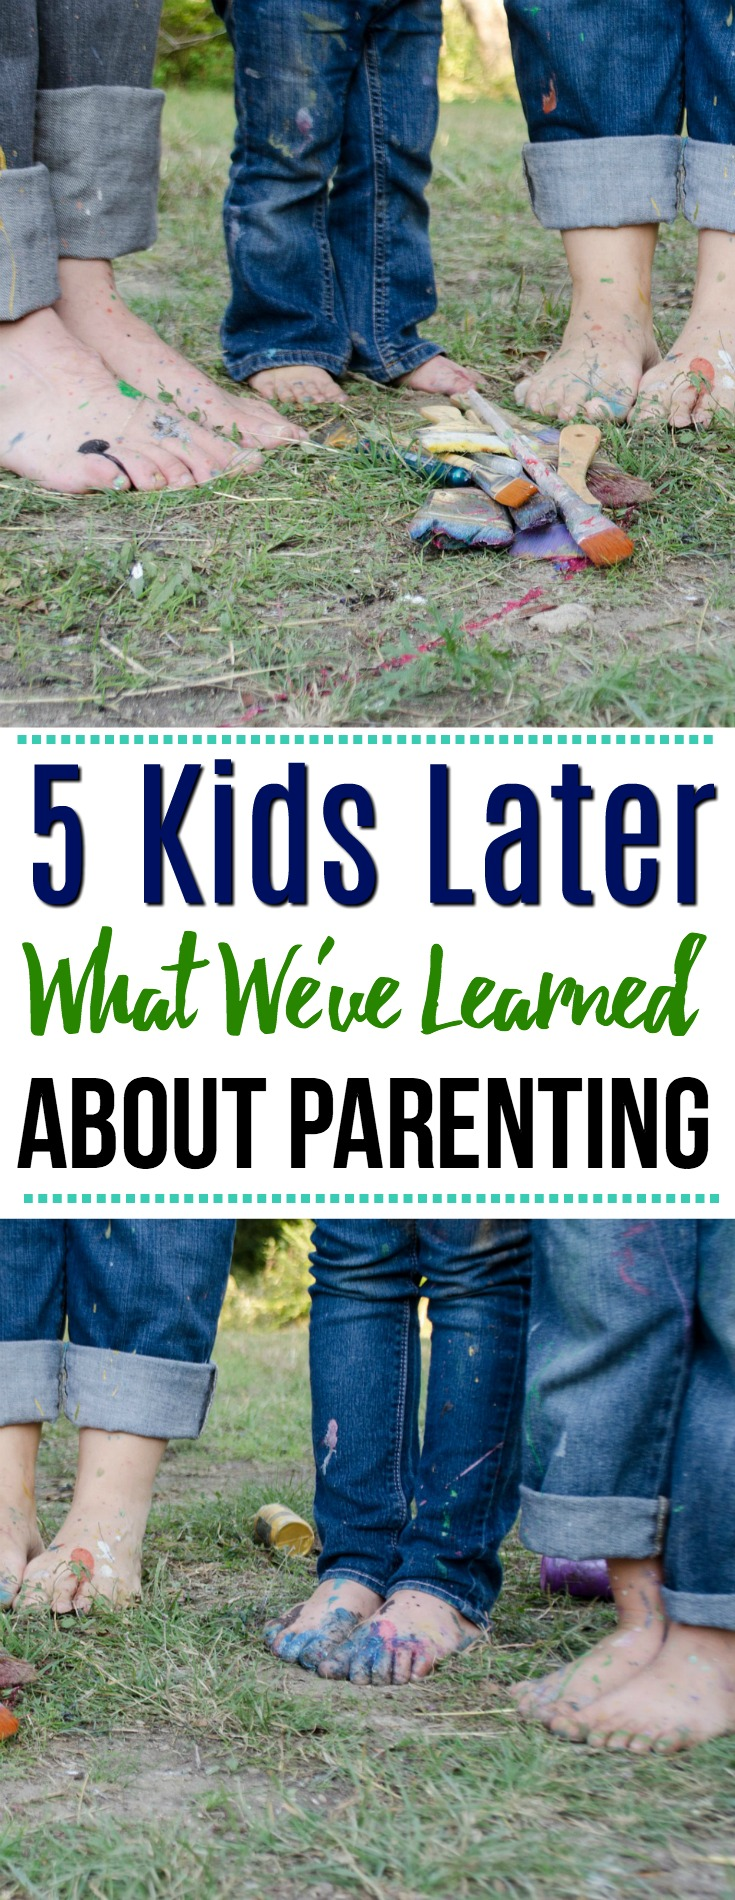 Sixteen years later, we're parents of five kids, and if anything rings true, it's that we have learned quite a bit along the way.  It didn't take us long to realize that we truly don't have it together as much as we think, or thought we do.  #parenting #kids #family